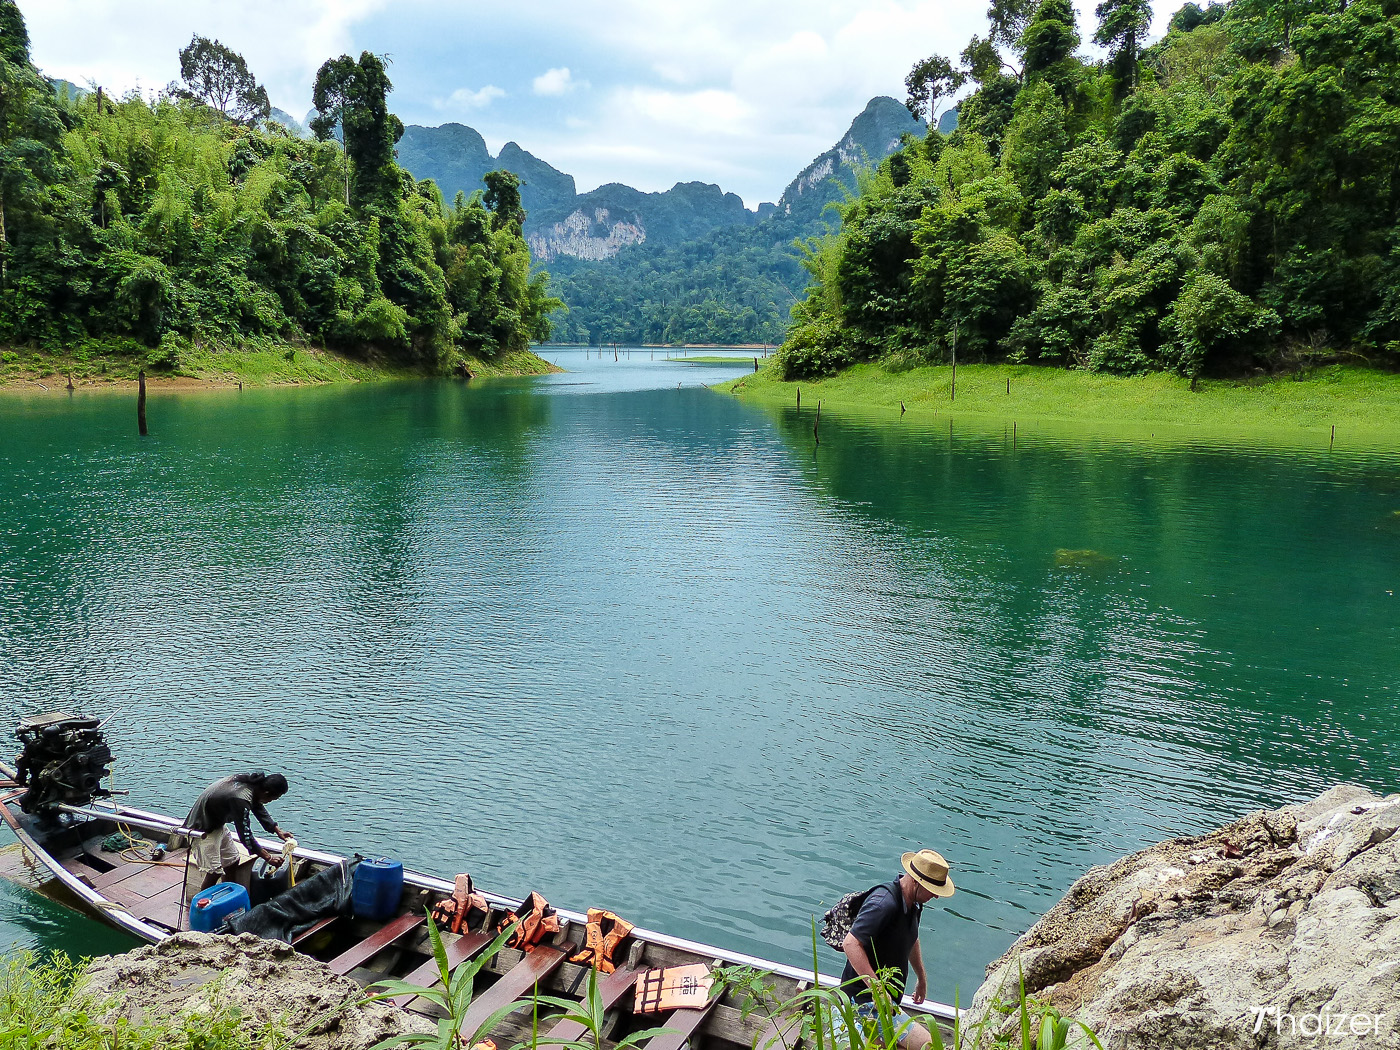 Ratchaprapa Dam and Cheow Larn Lake, Khao Sok